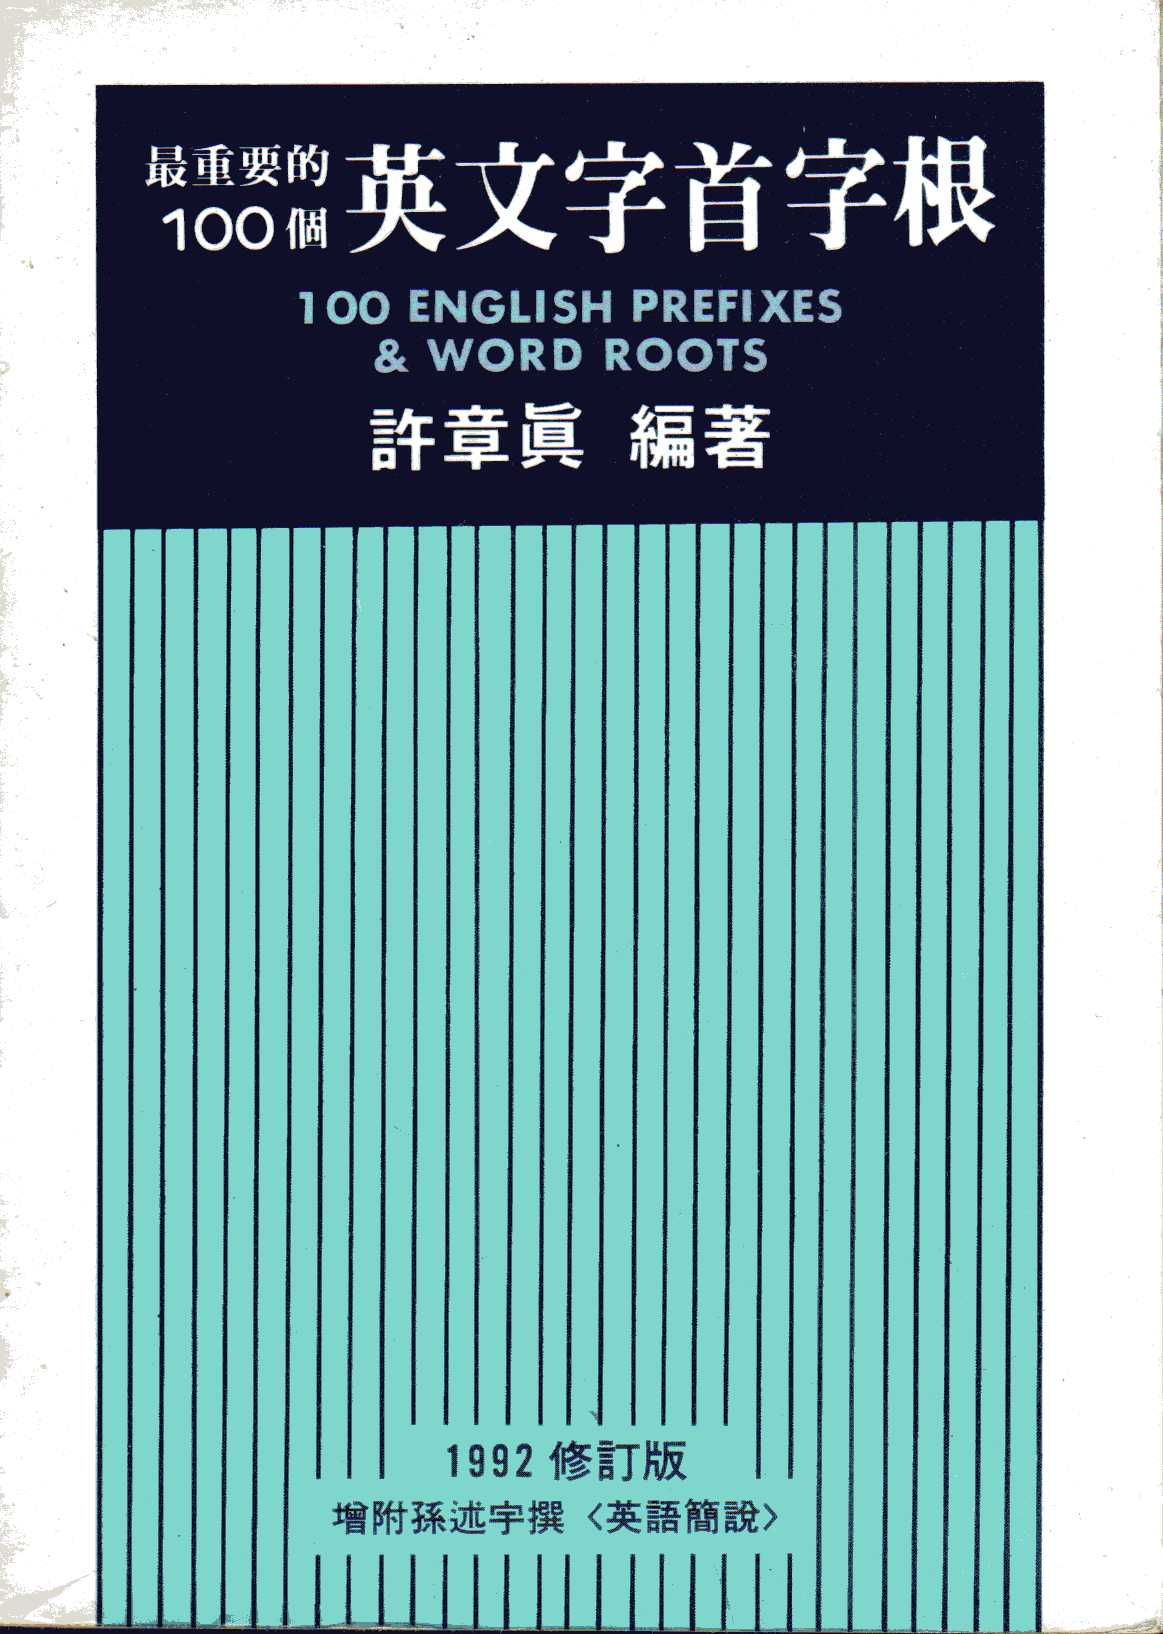 100 English Prefixes & Word Roots